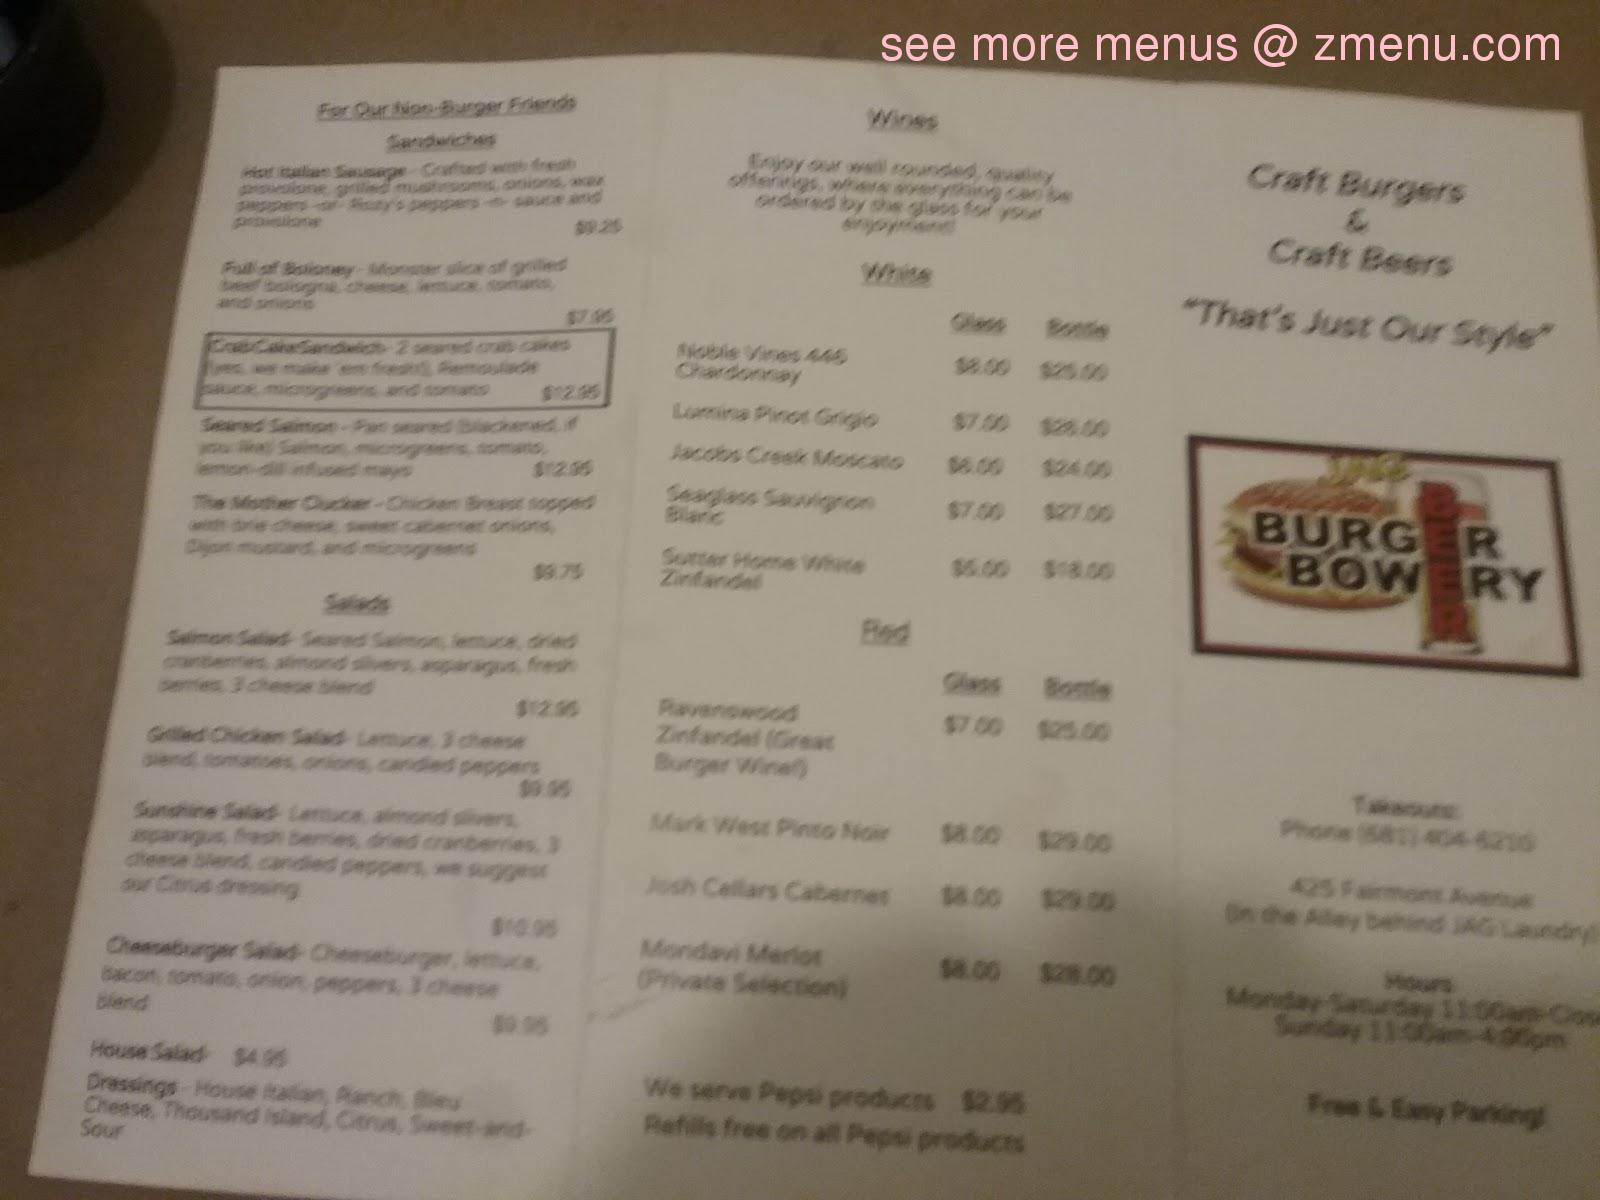 Online Menu Of Jag Beer Burger Bowery Restaurant Fairmont West Virginia 26554 Zmenu